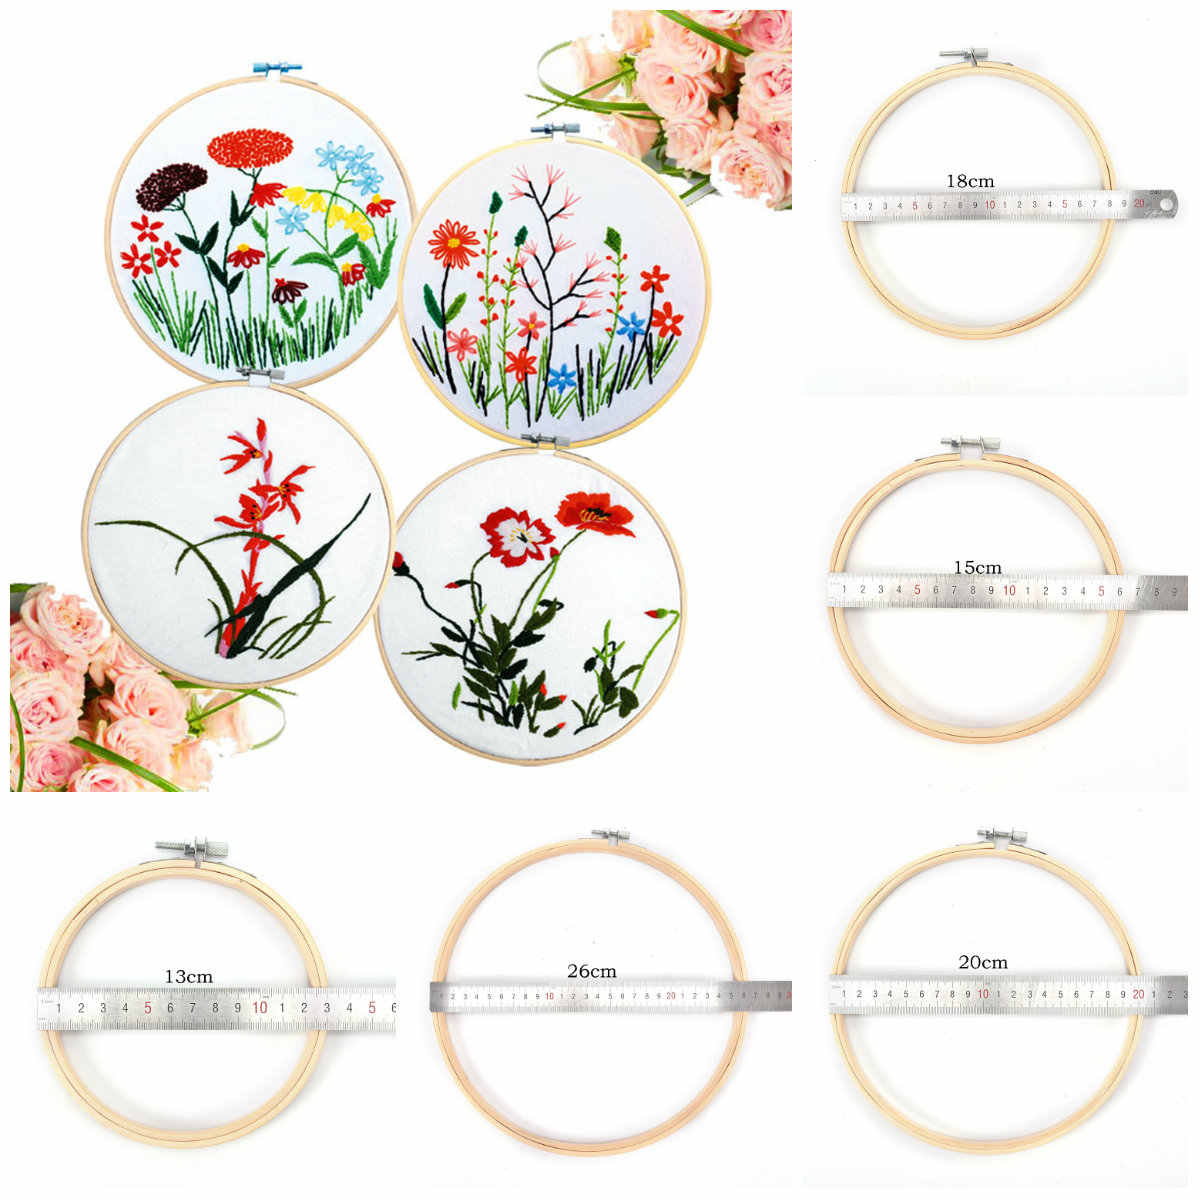 13-26CM Bamboo Frame Embroidery Hoop Ring DIY Needlecraft Cross Stitch Machine Round Loop Hand Household Sewing Tools